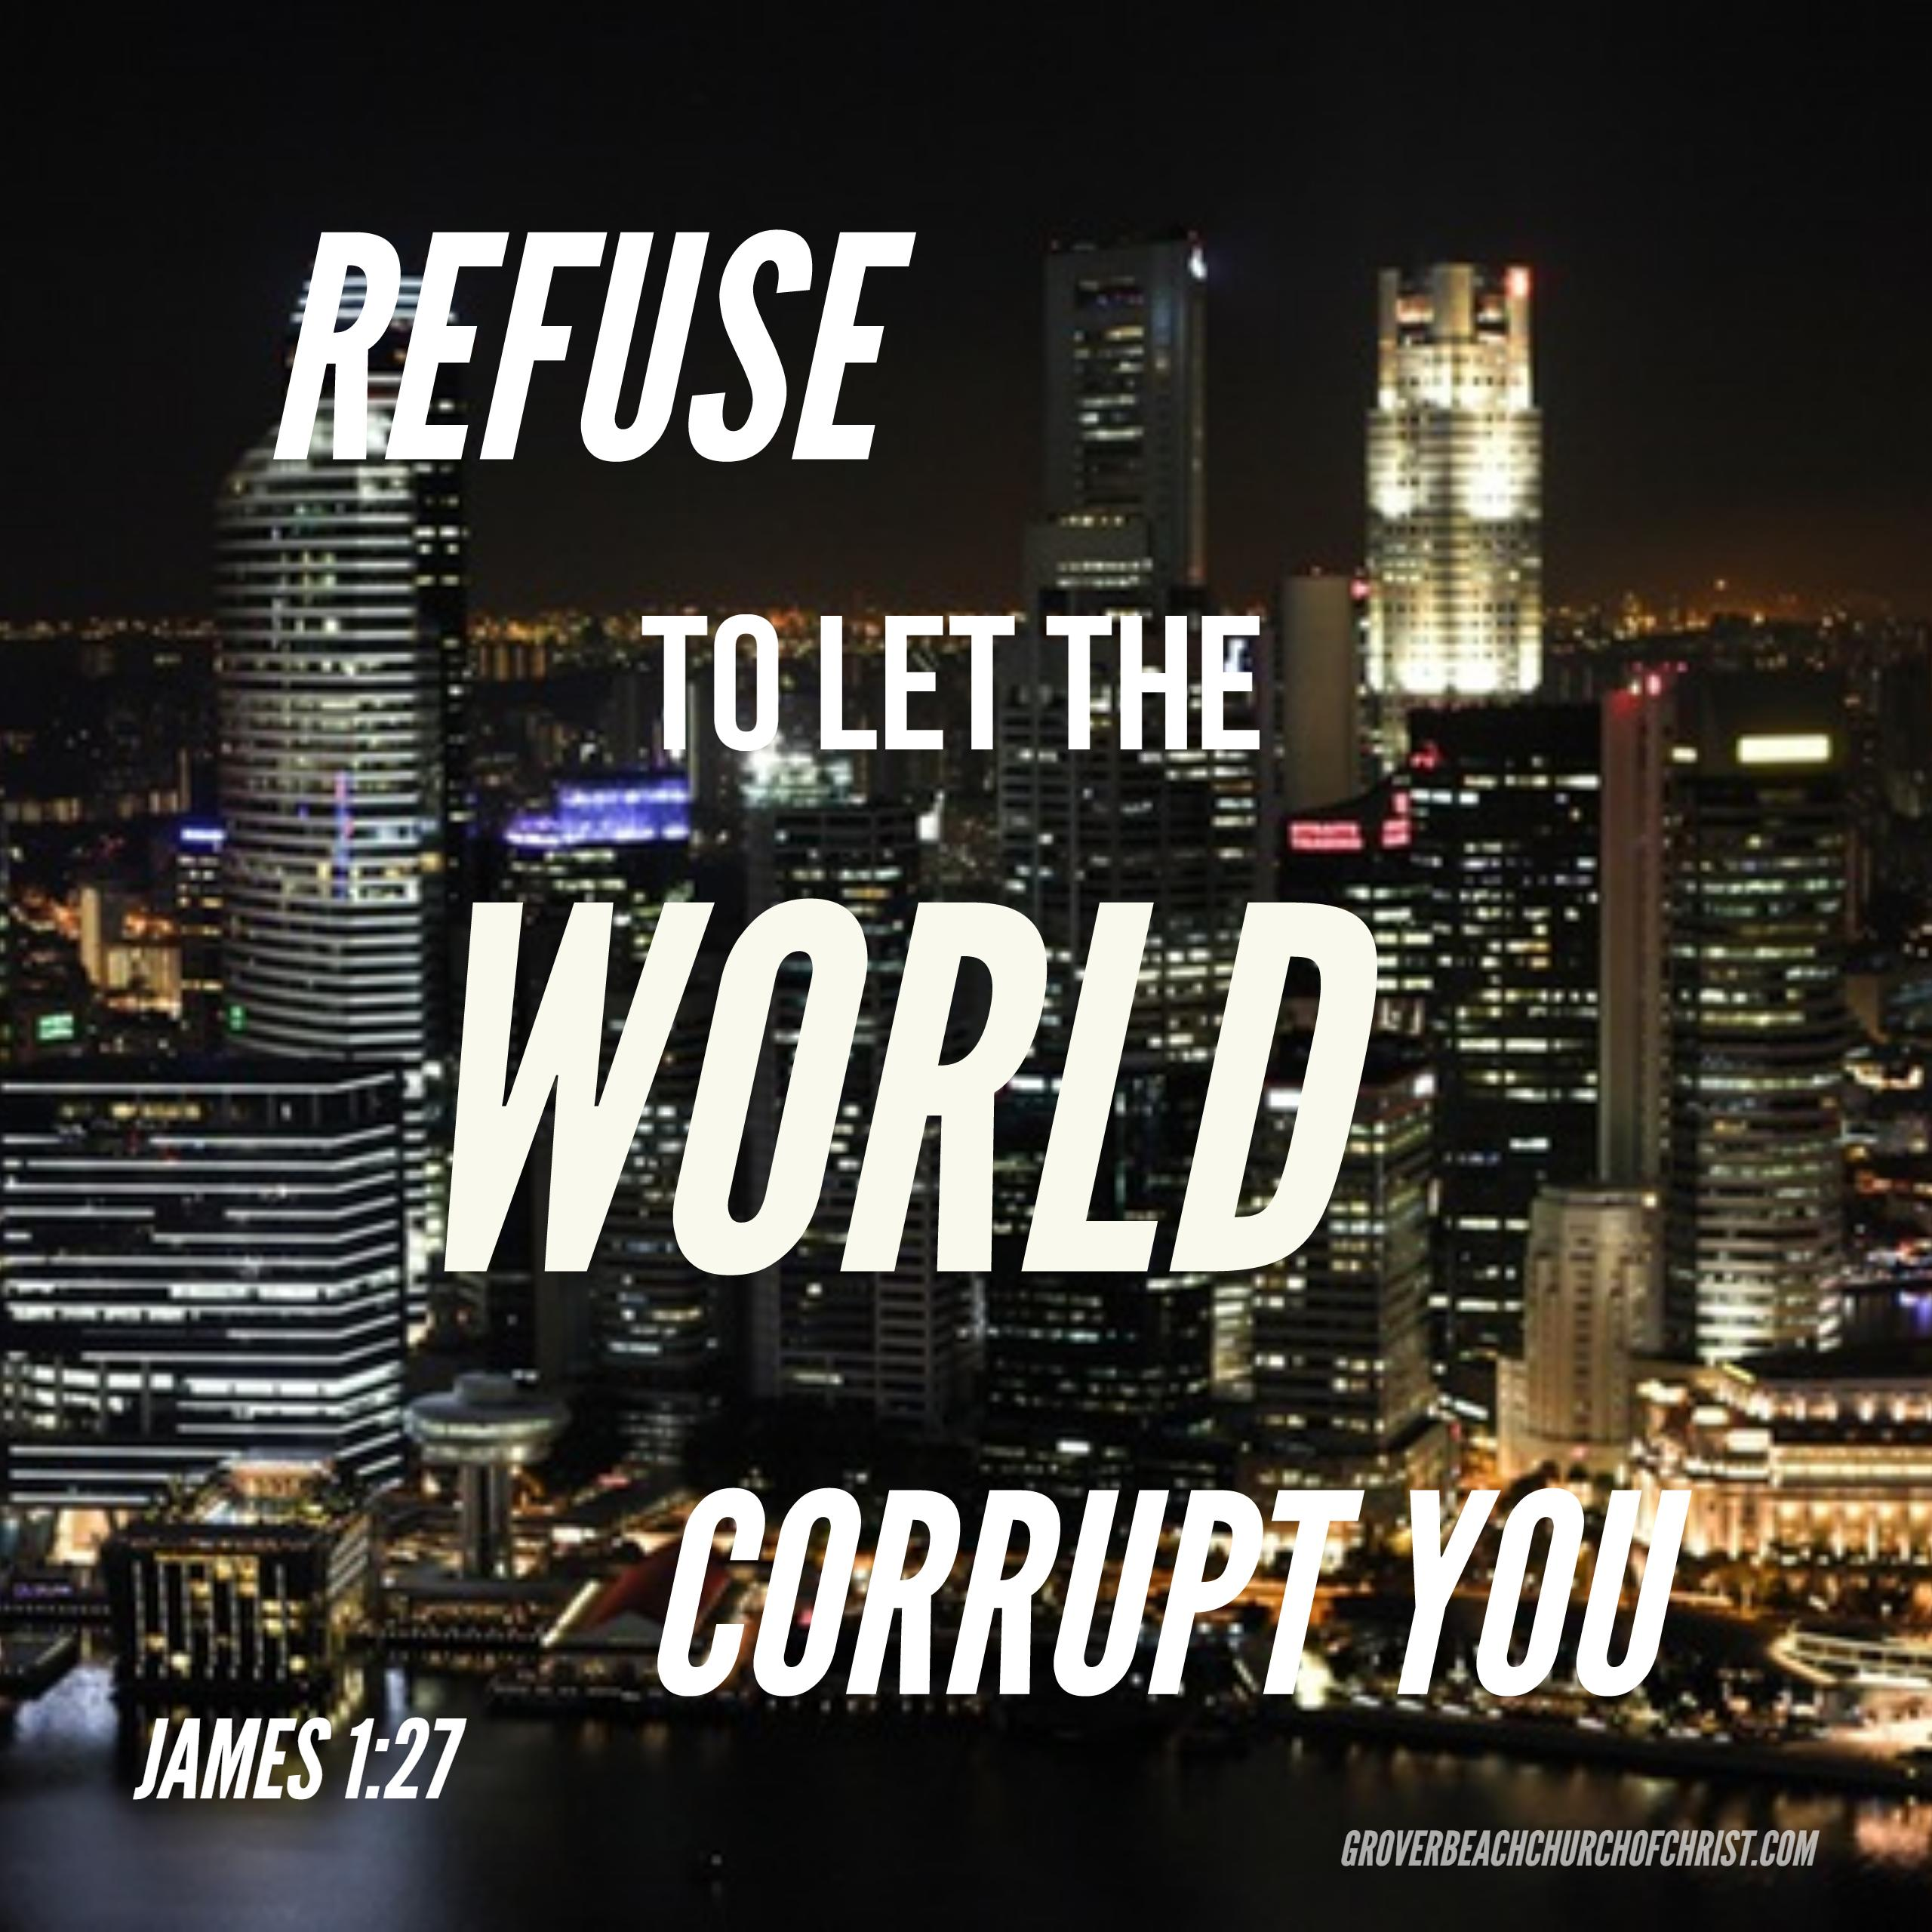 James 1-27 Refuse to let the world